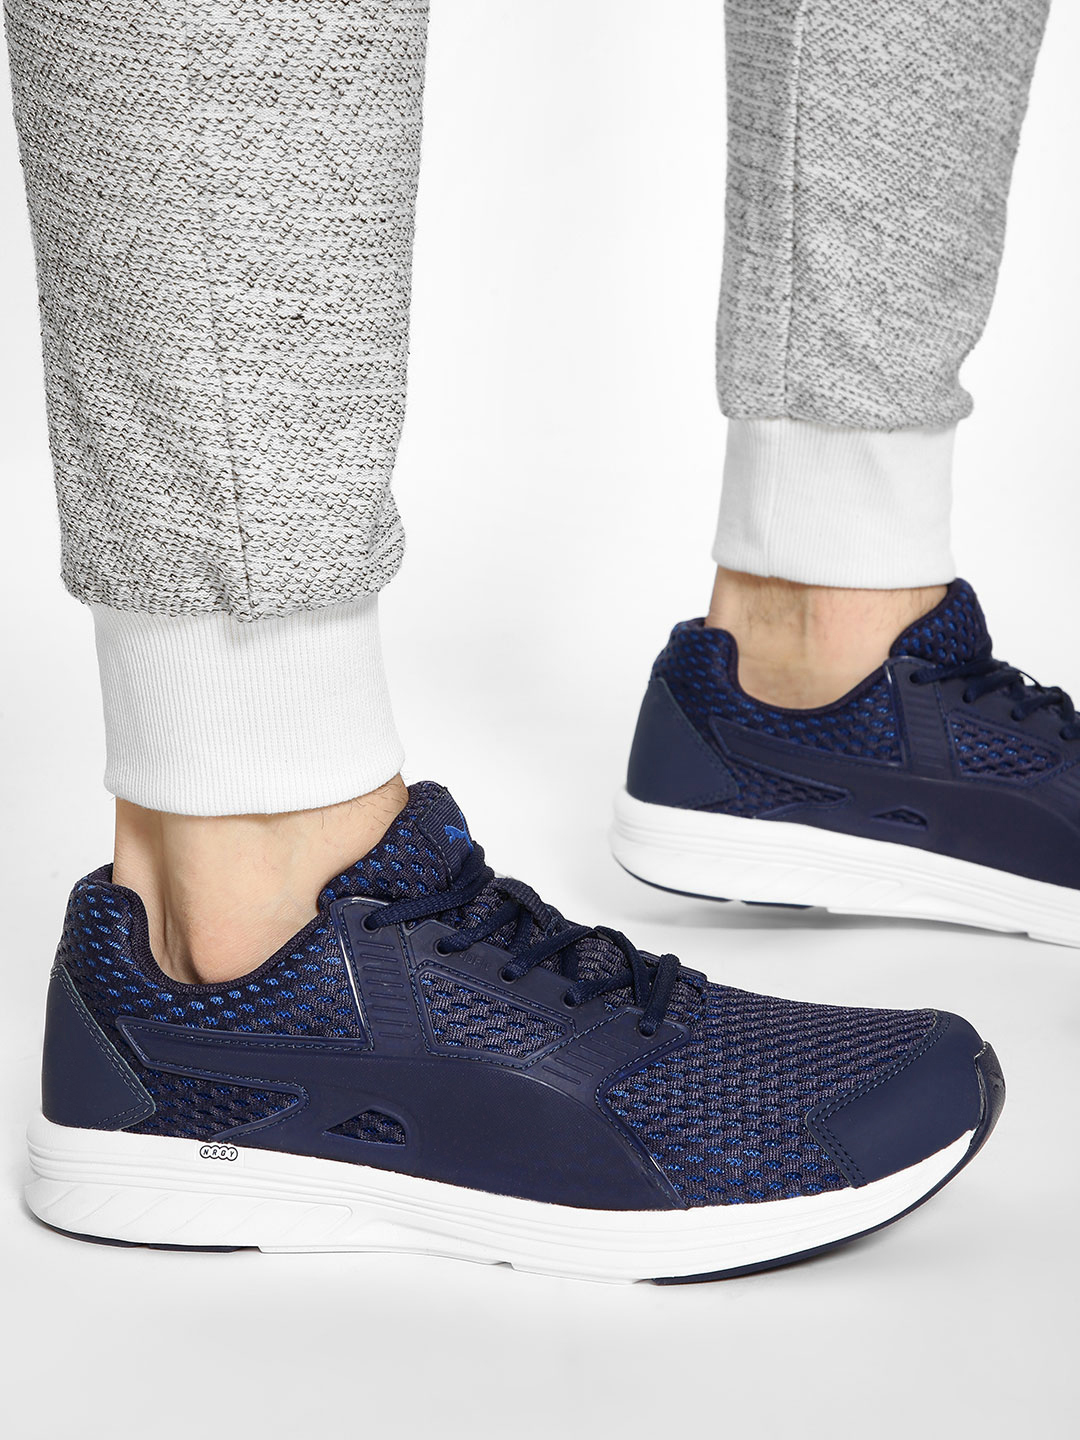 Puma Blue NRGY Driver IDP Shoes 1